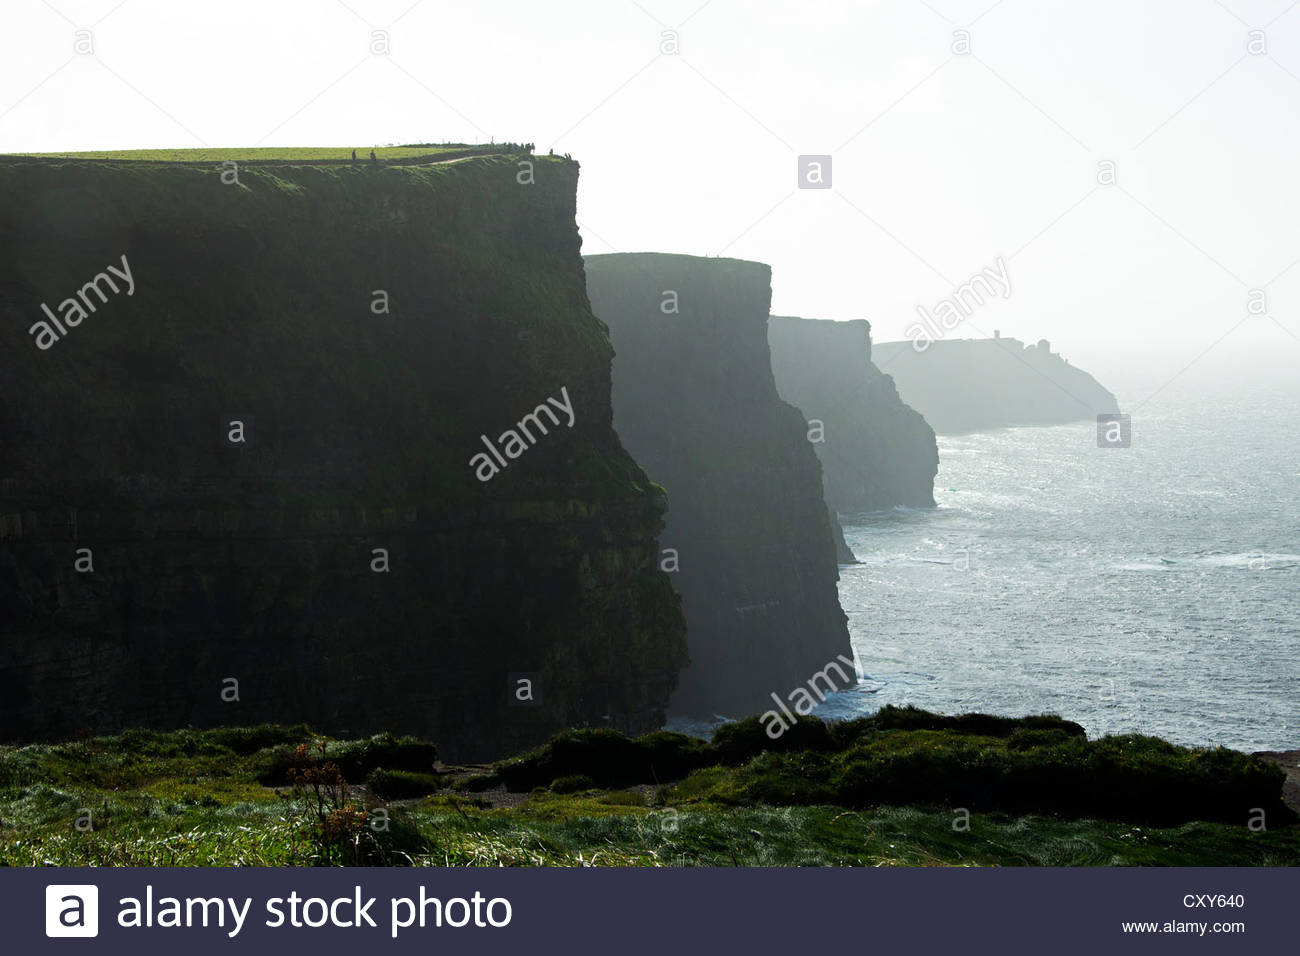 Cliffs of Moher, Co. Clare, Ireland - Stock Image